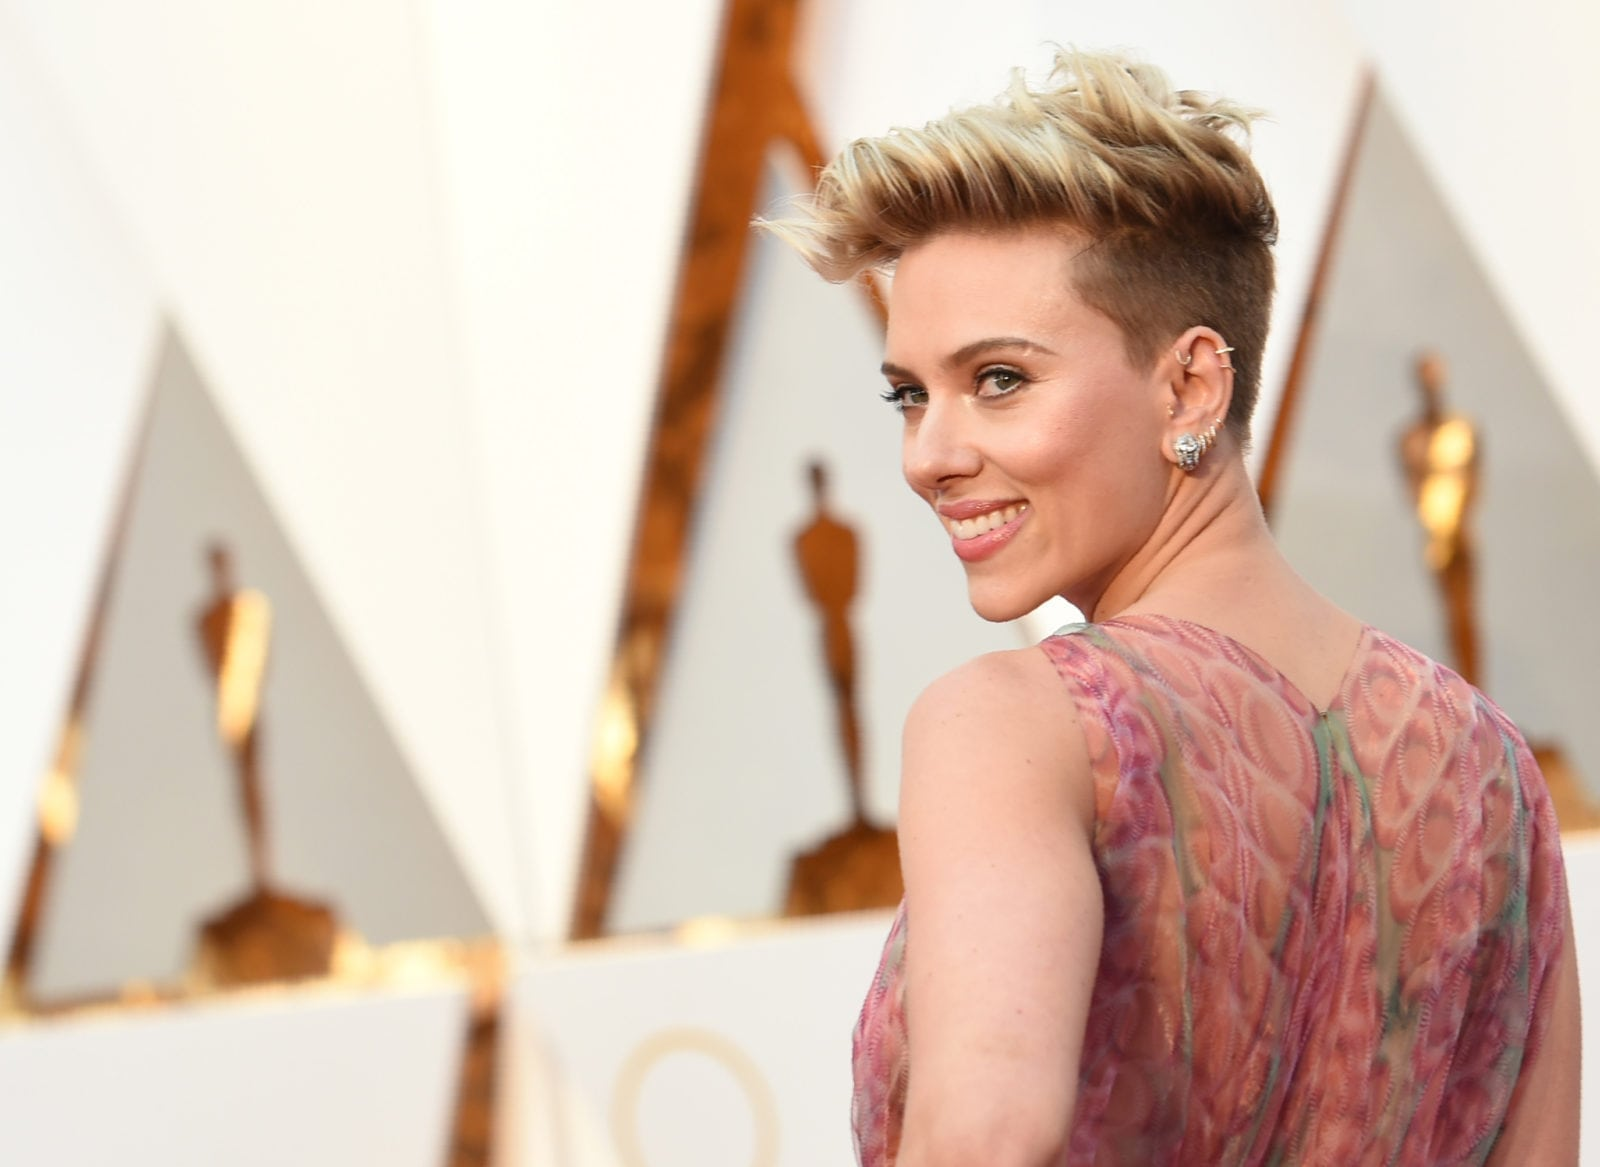 A picture of Scarlett Johannson, who Andy Serkis believe should have been casted to play a trans character.